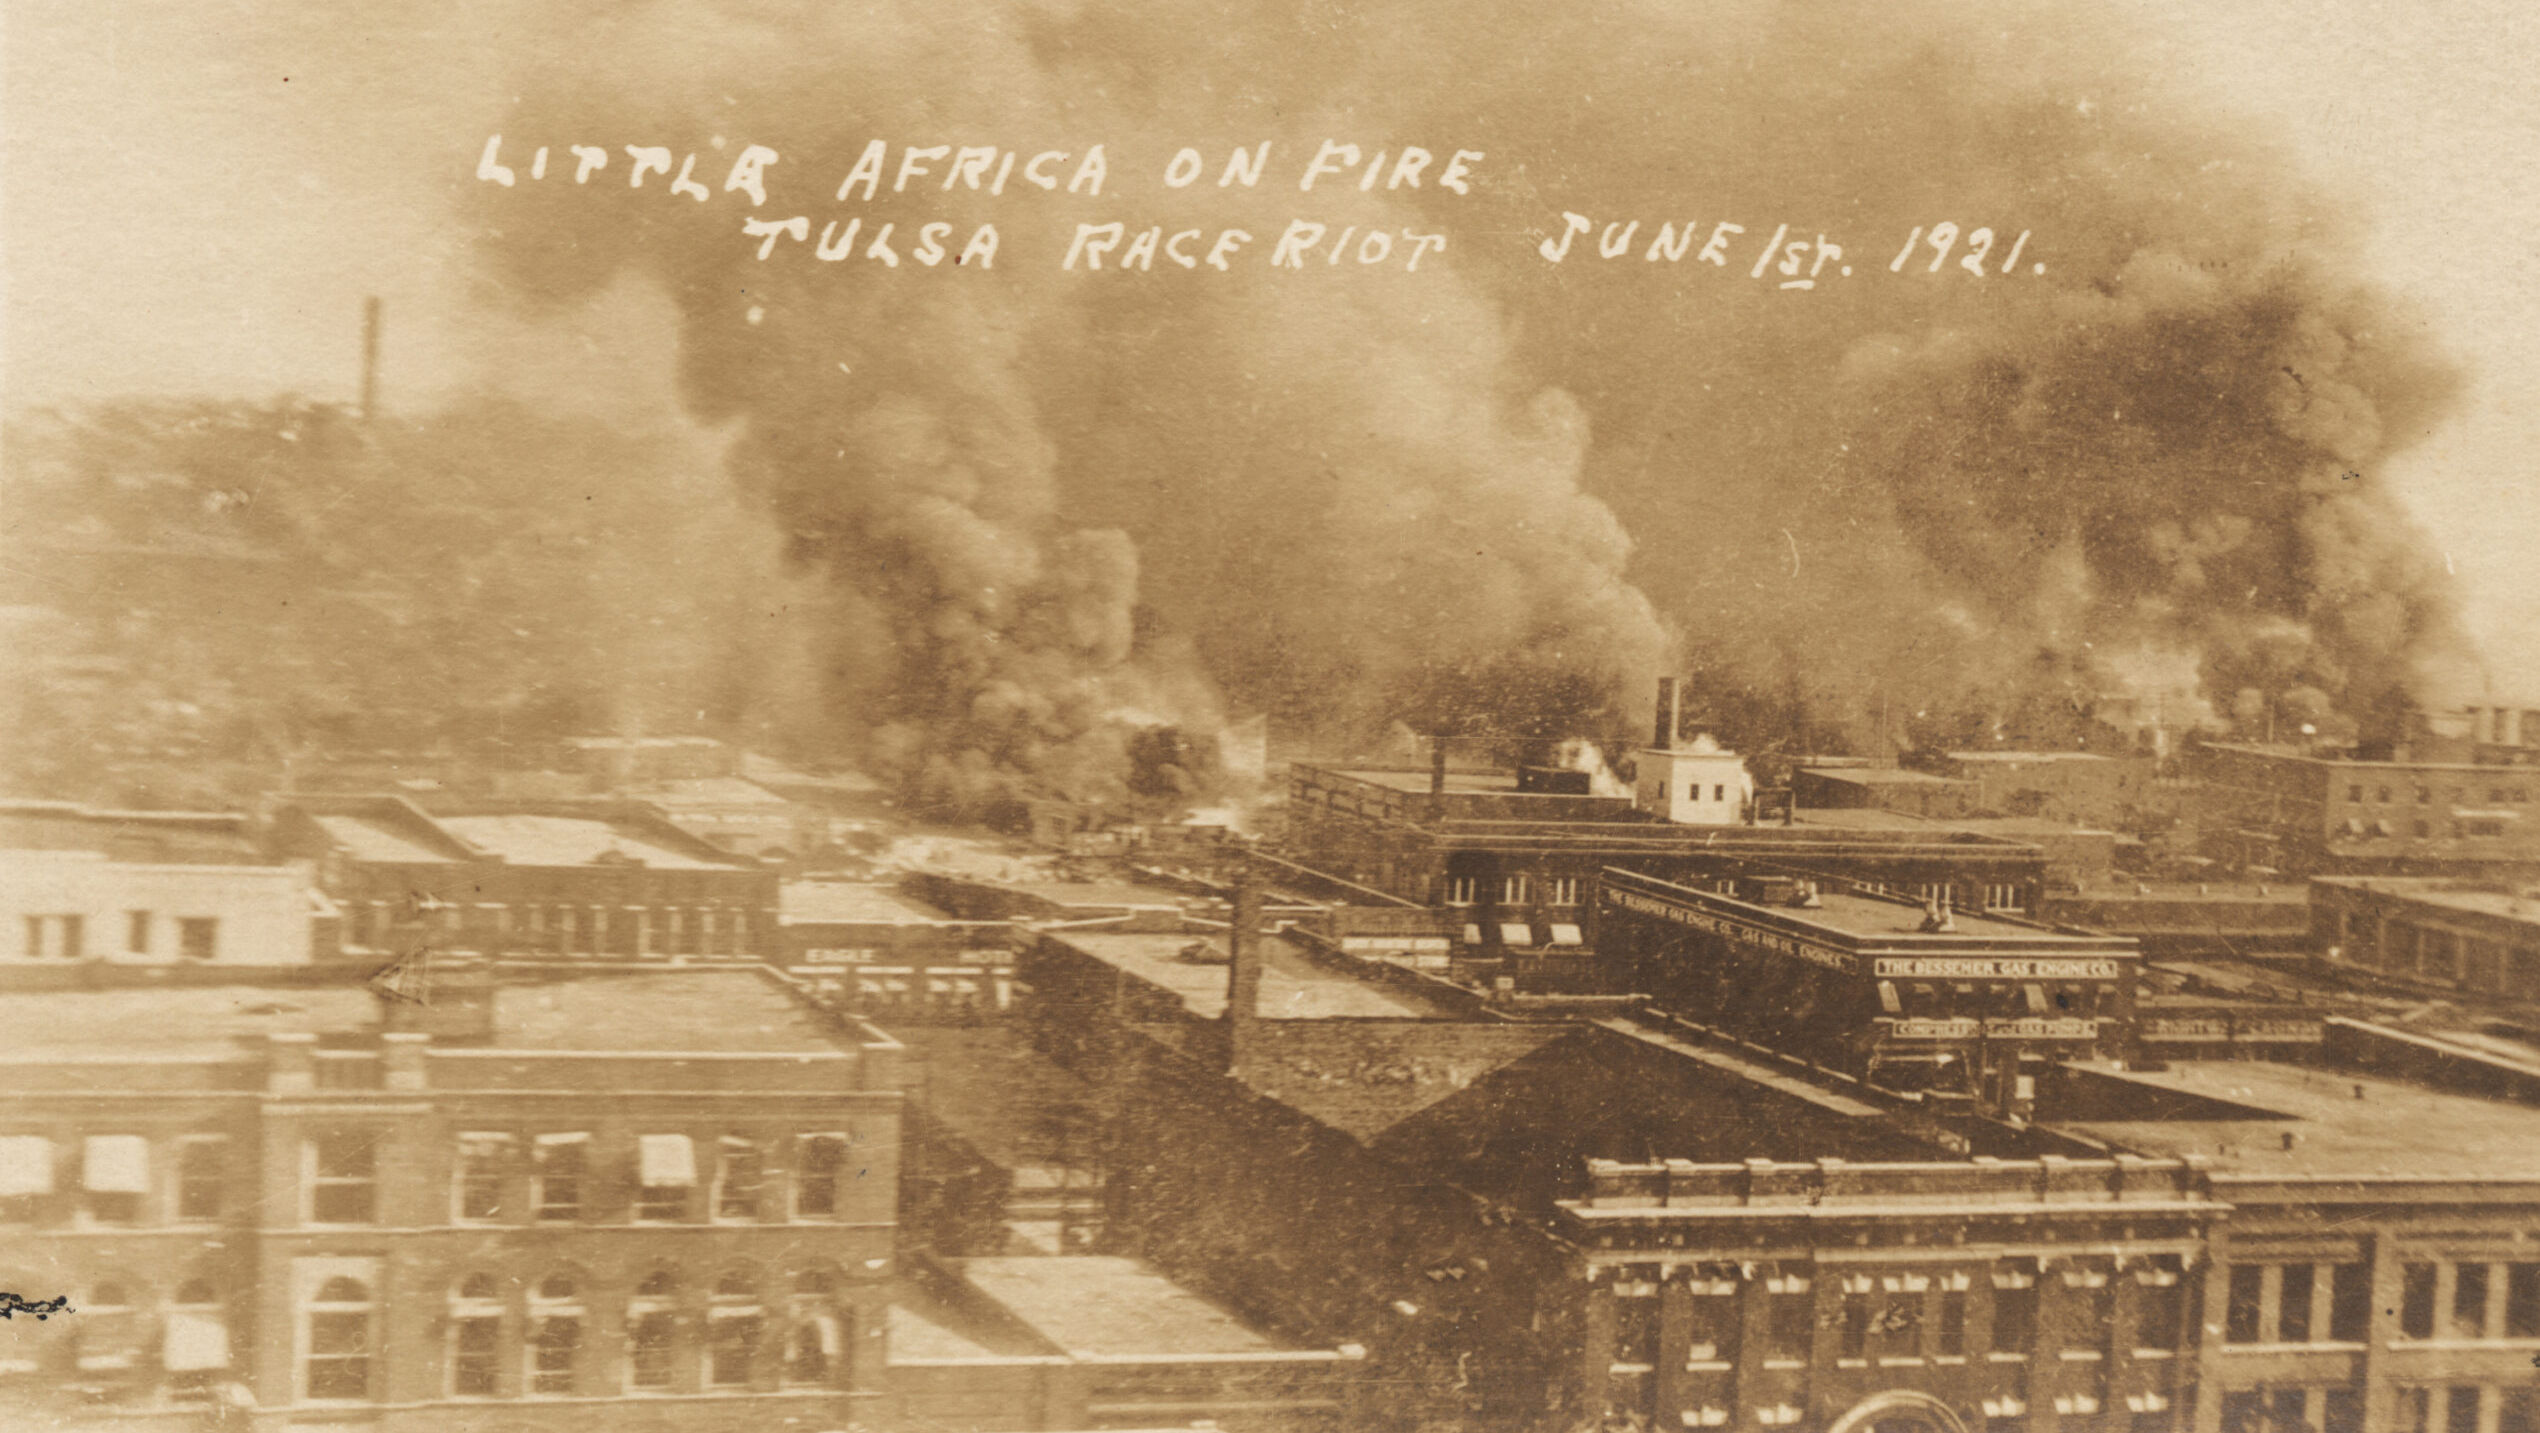 A sepia tone photograph showing rooftops of brick buildings, many of which are obscured by clouds of smoke from a fire.